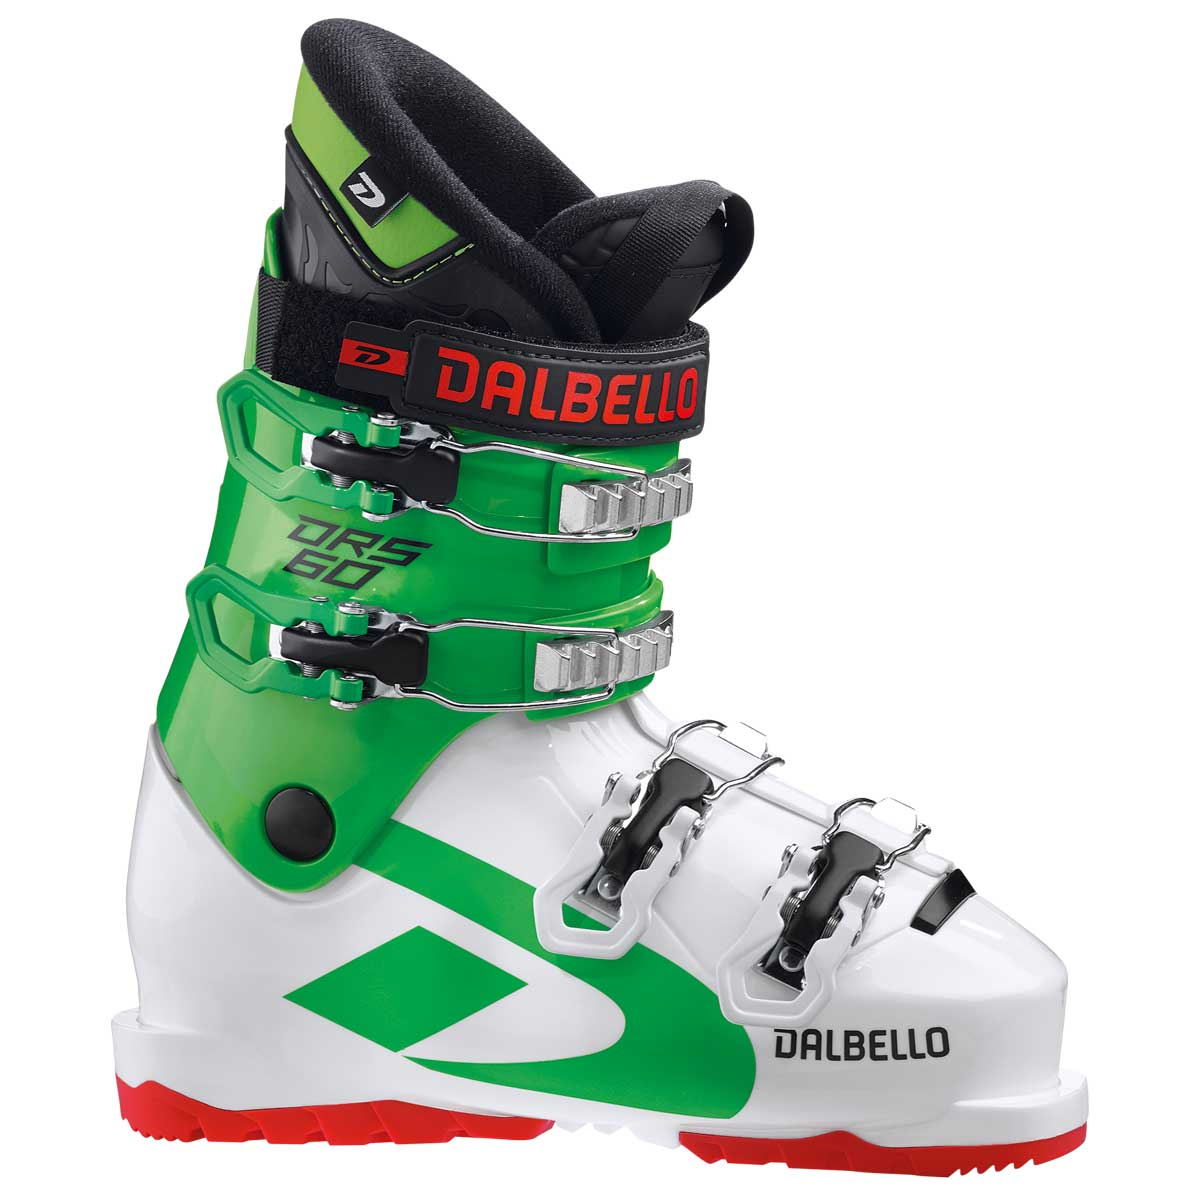 Dalbello DRS 60 Jr Kids' Ski Boot in White and Race Green